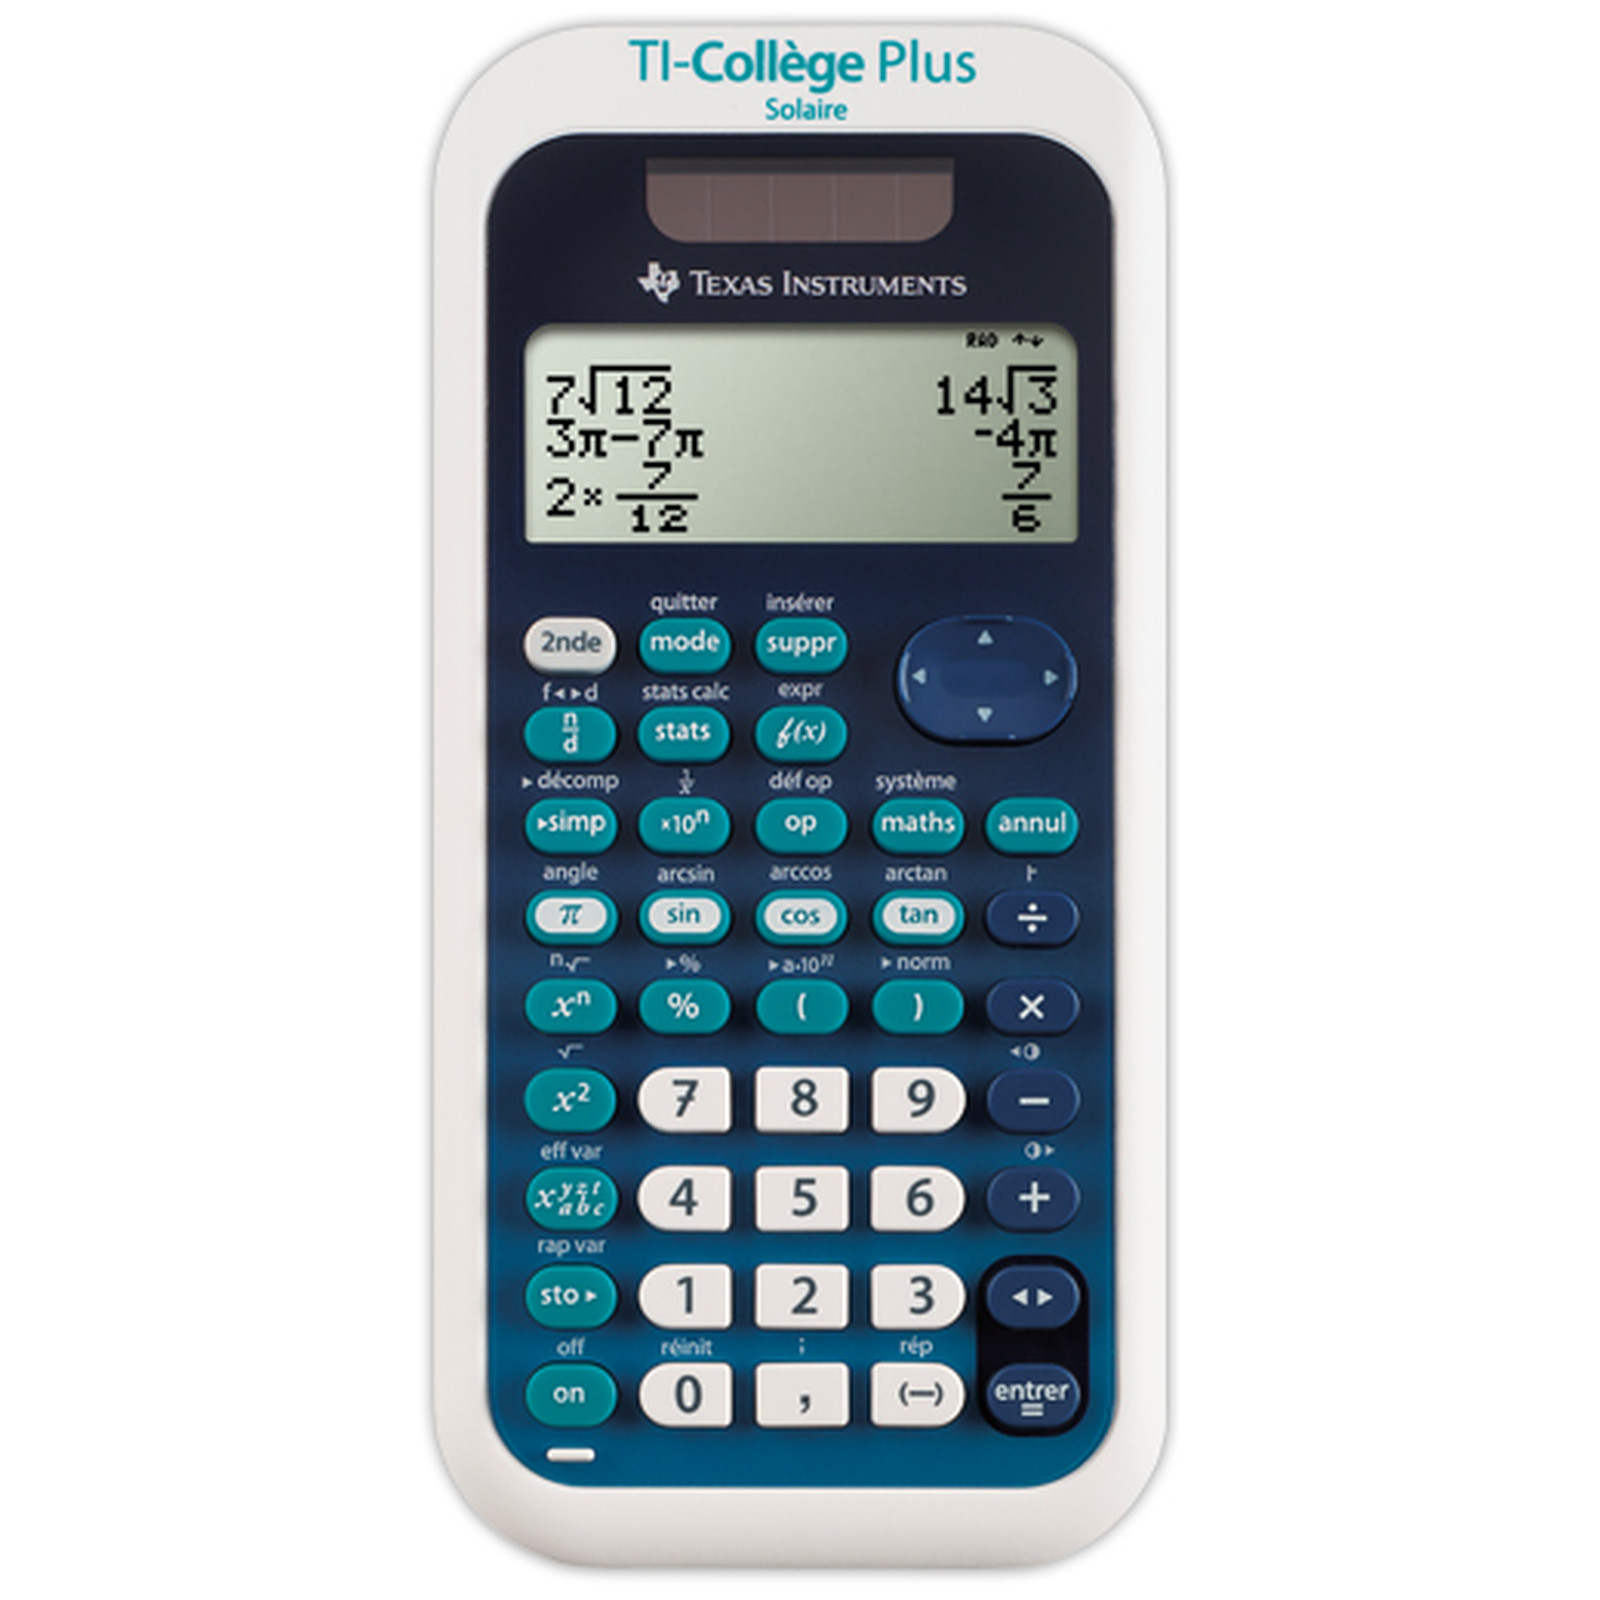 Calculatrice scolaire TI-College Plus - calculatrice speciale collège